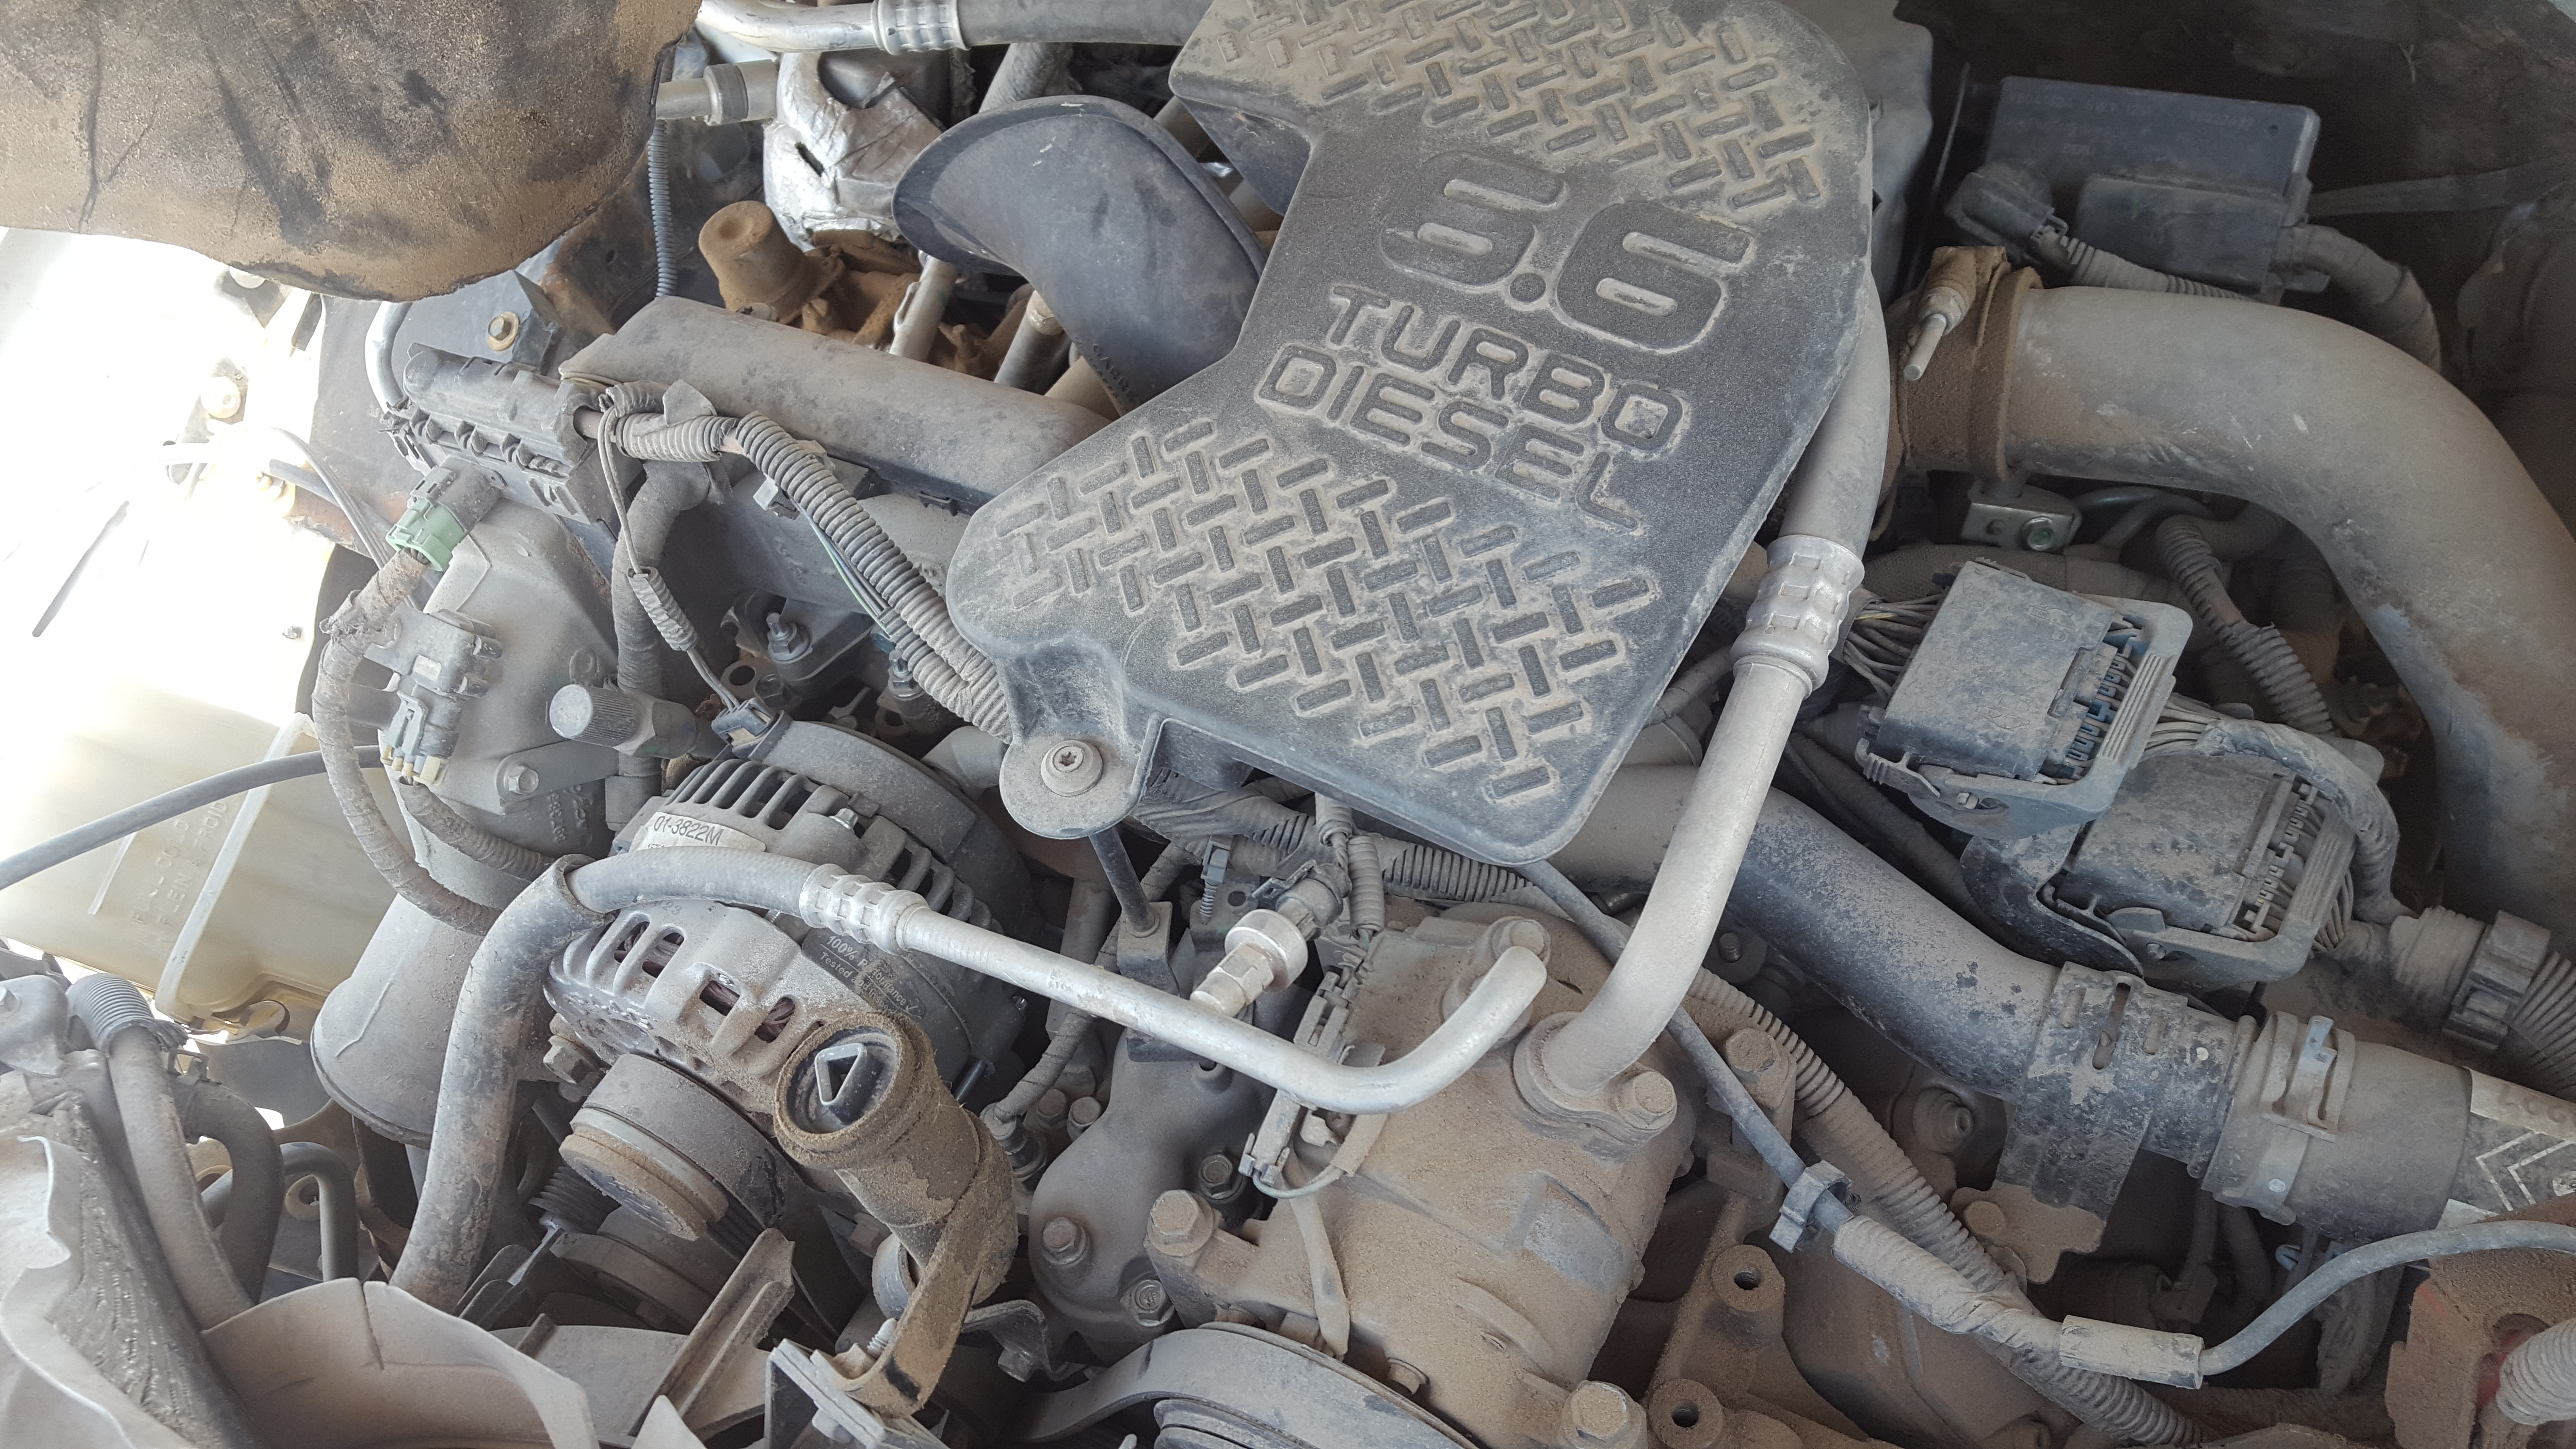 2007 Duramax Diesel LBZ and 6-speed Allison transmission